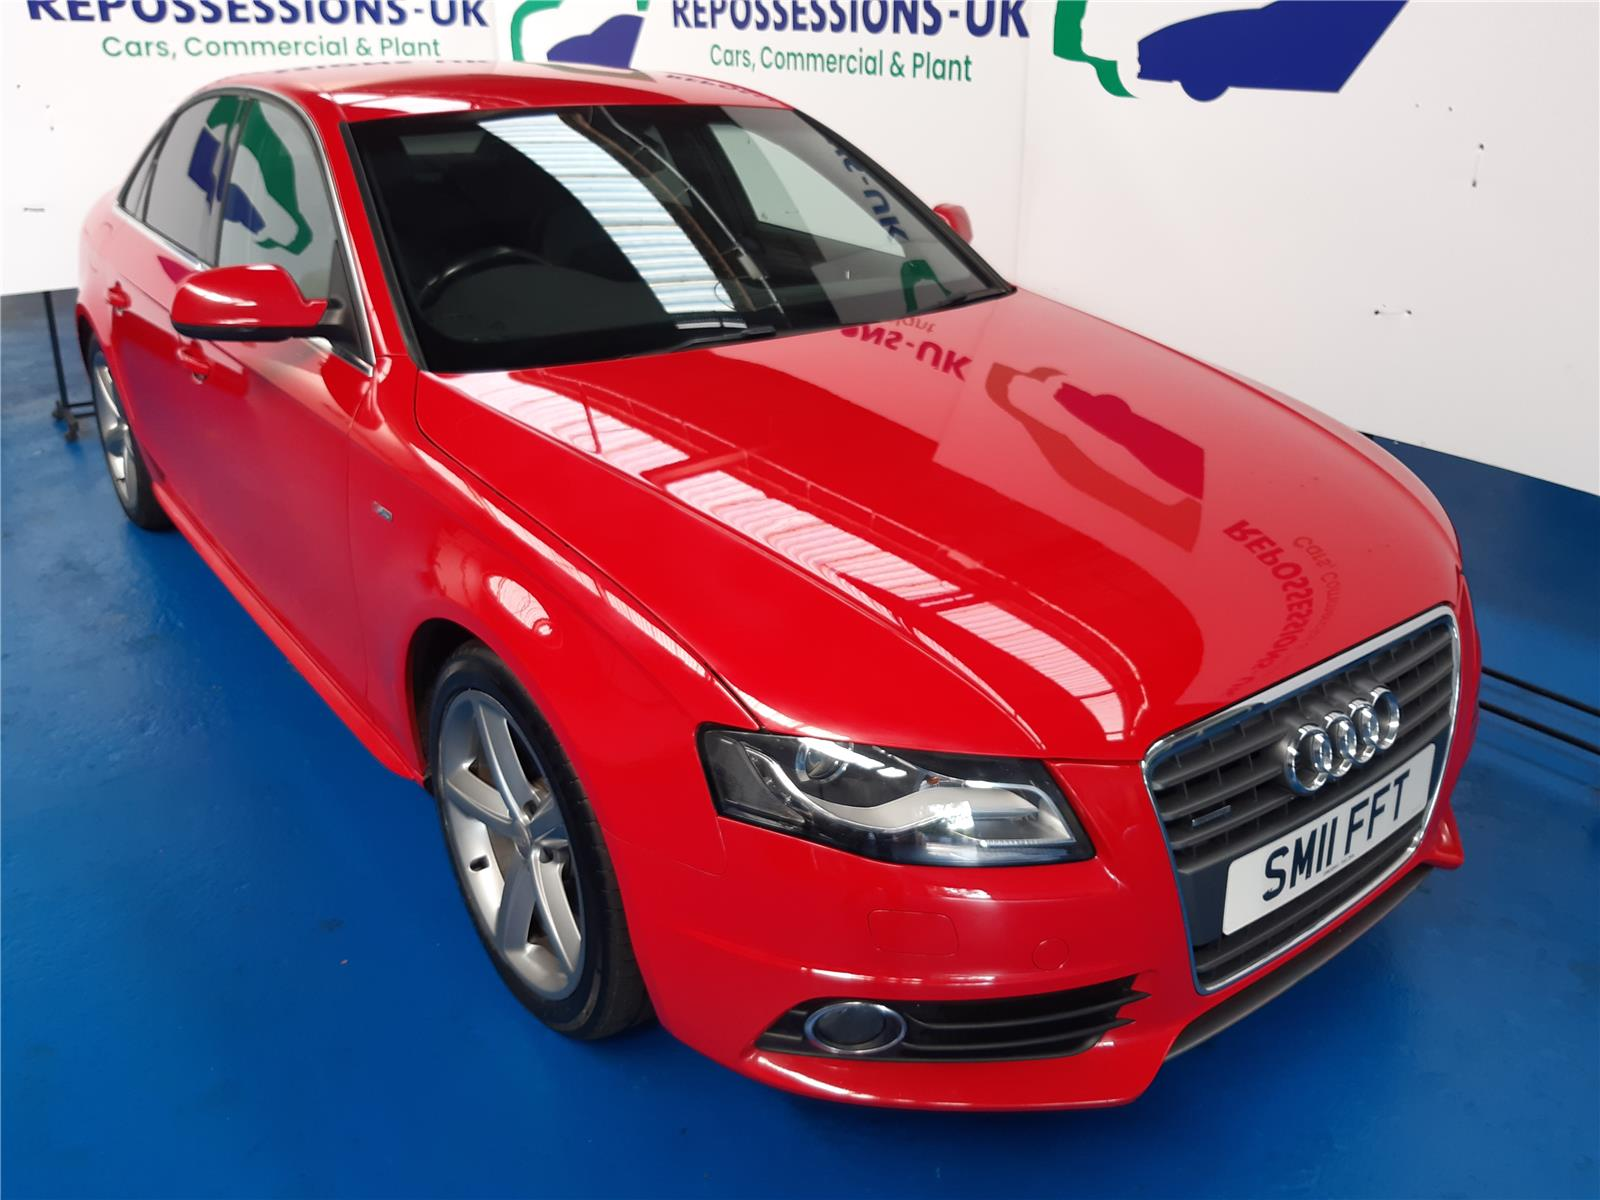 2011 AUDI A4 TDI QUATTRO S LINE 1968 DIESEL MANUAL 6 Speed 4 DOOR SALOON